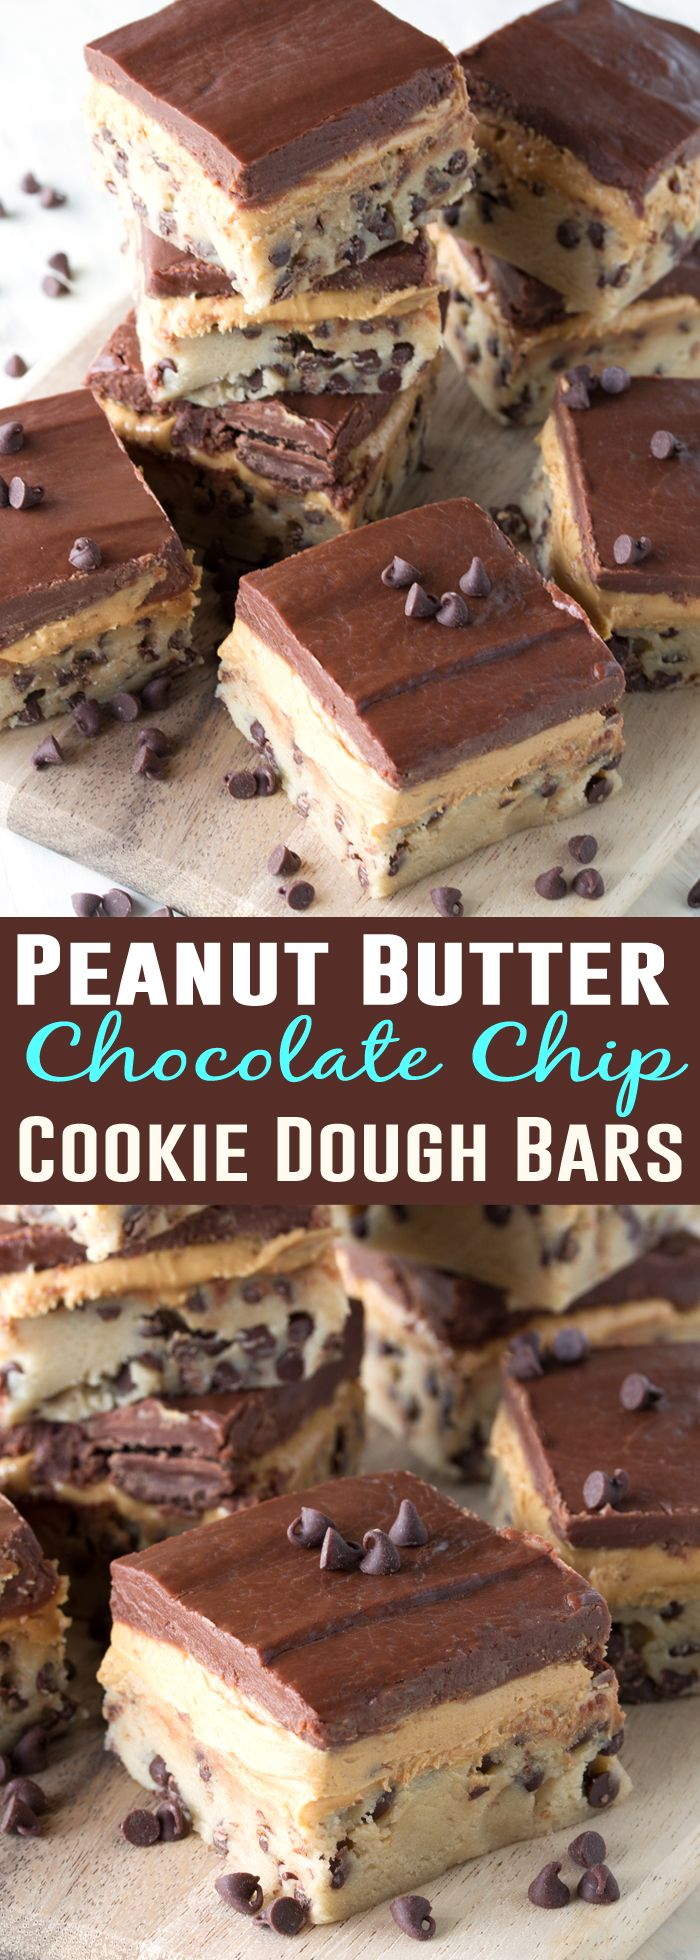 Chocolate chip cookie dough, peanut butter cup filling, and a chocolate ganache create three layers of no bake goodness. No Bake Peanut Butter Chocolate Chip…